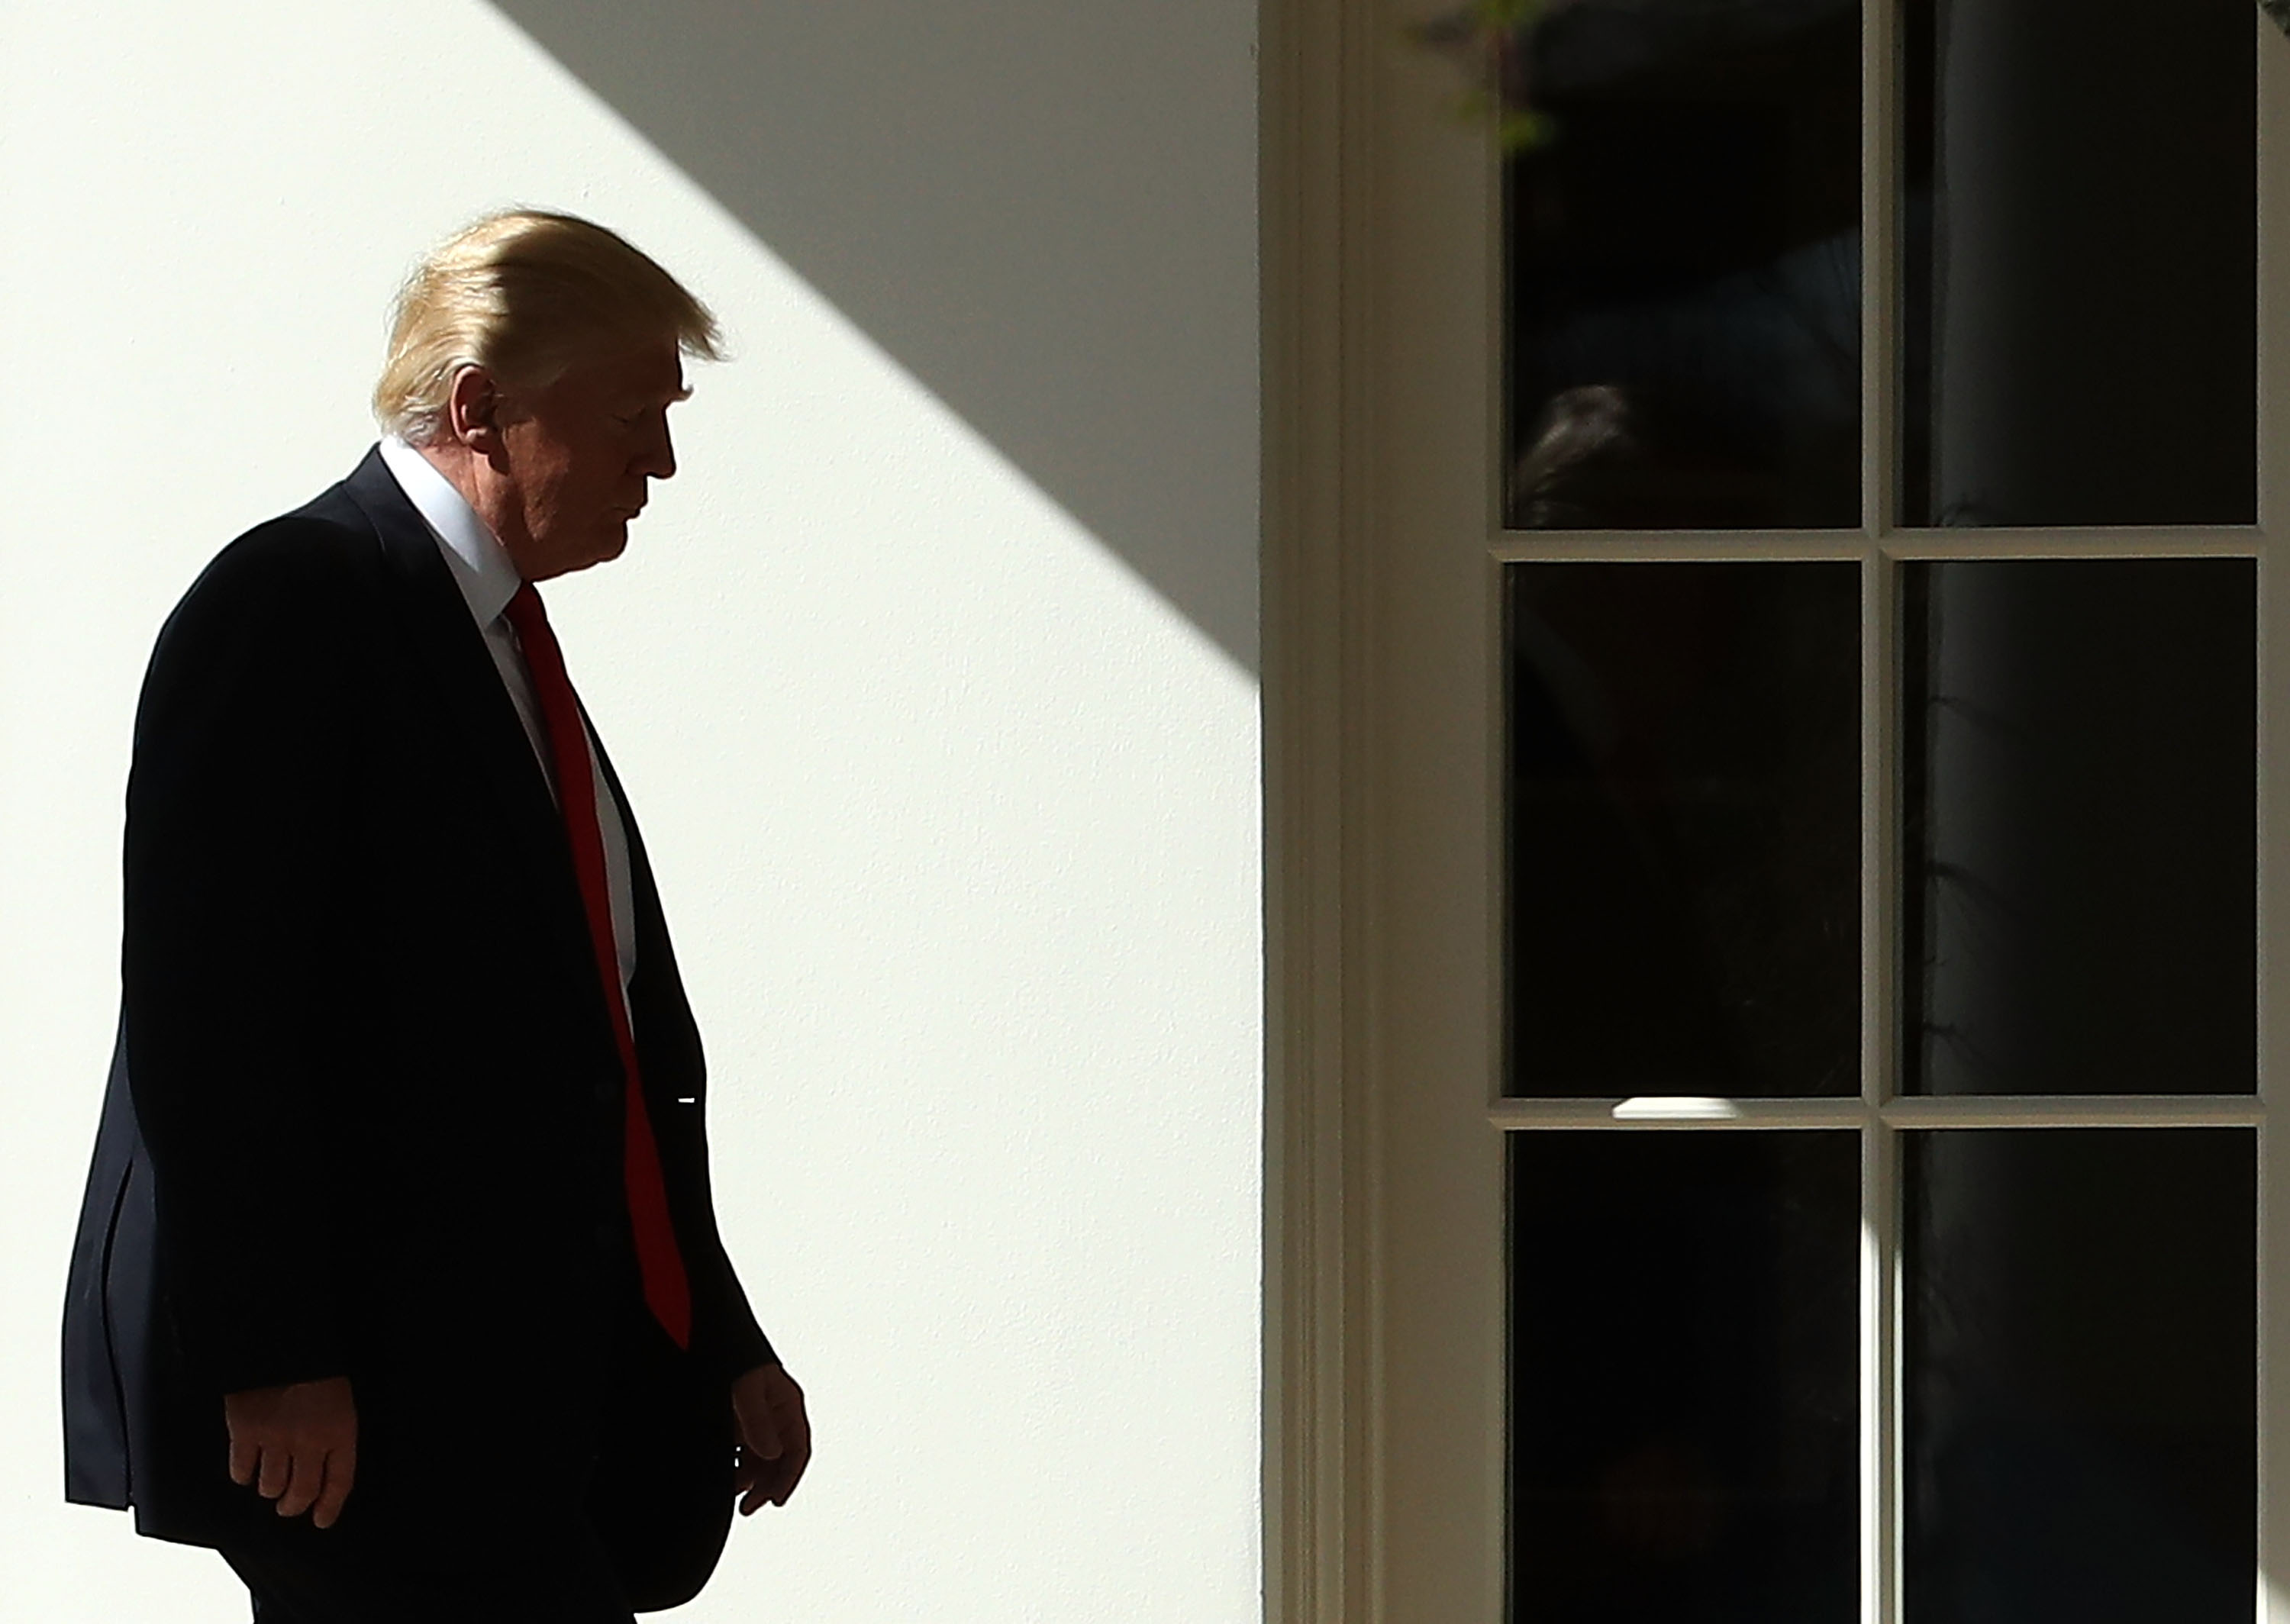 President Trump walks to the Oval Office at the White House, on Feb. 24, 2017.